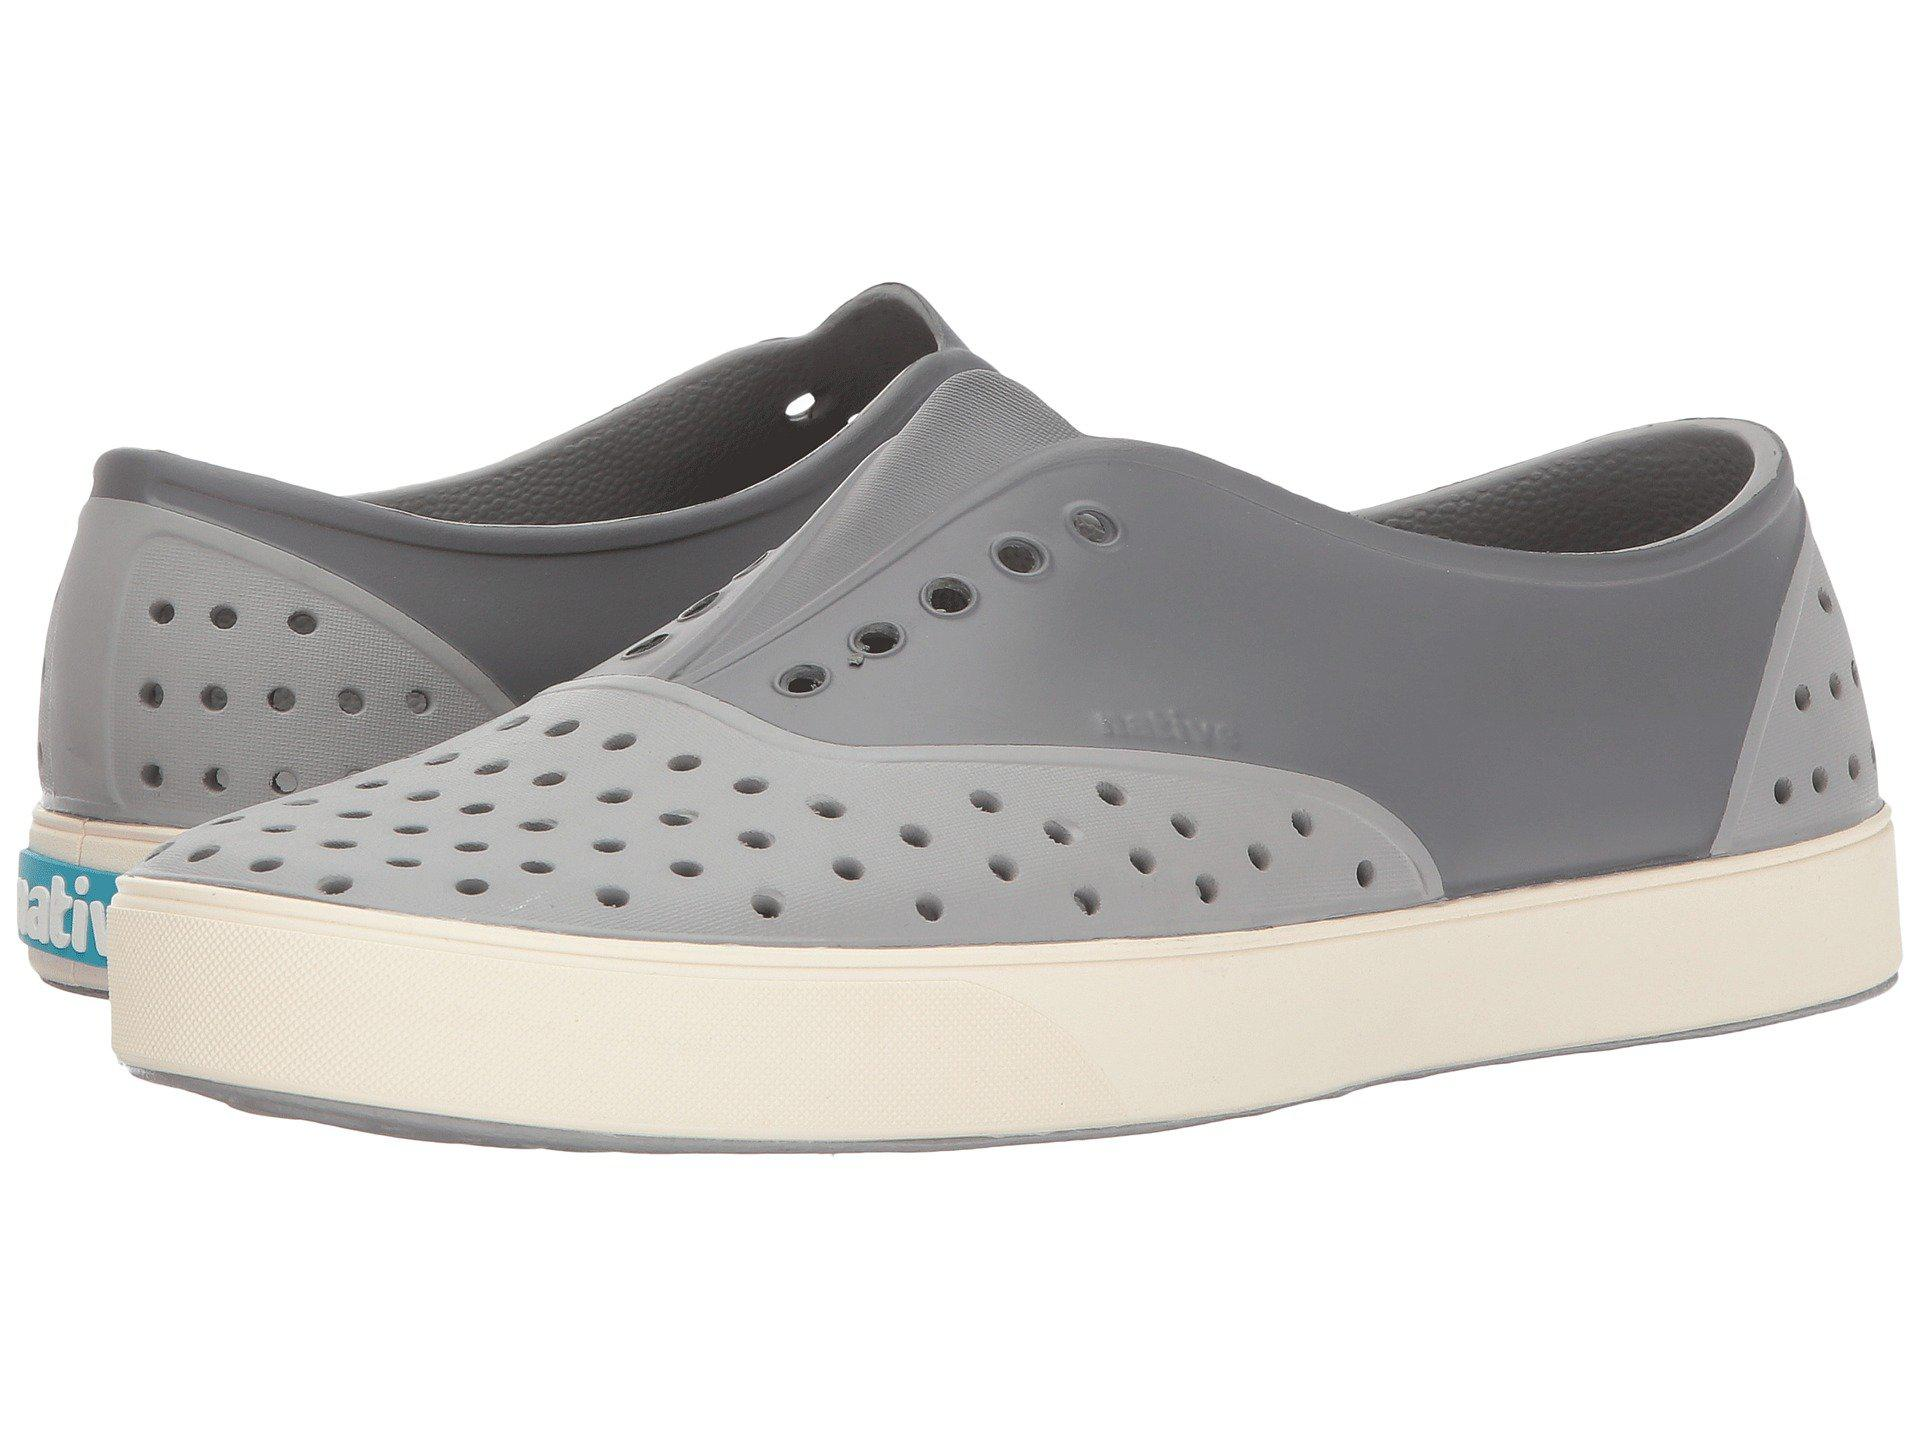 9e9aee4e3 Lyst - Native Shoes Miller in Gray for Men